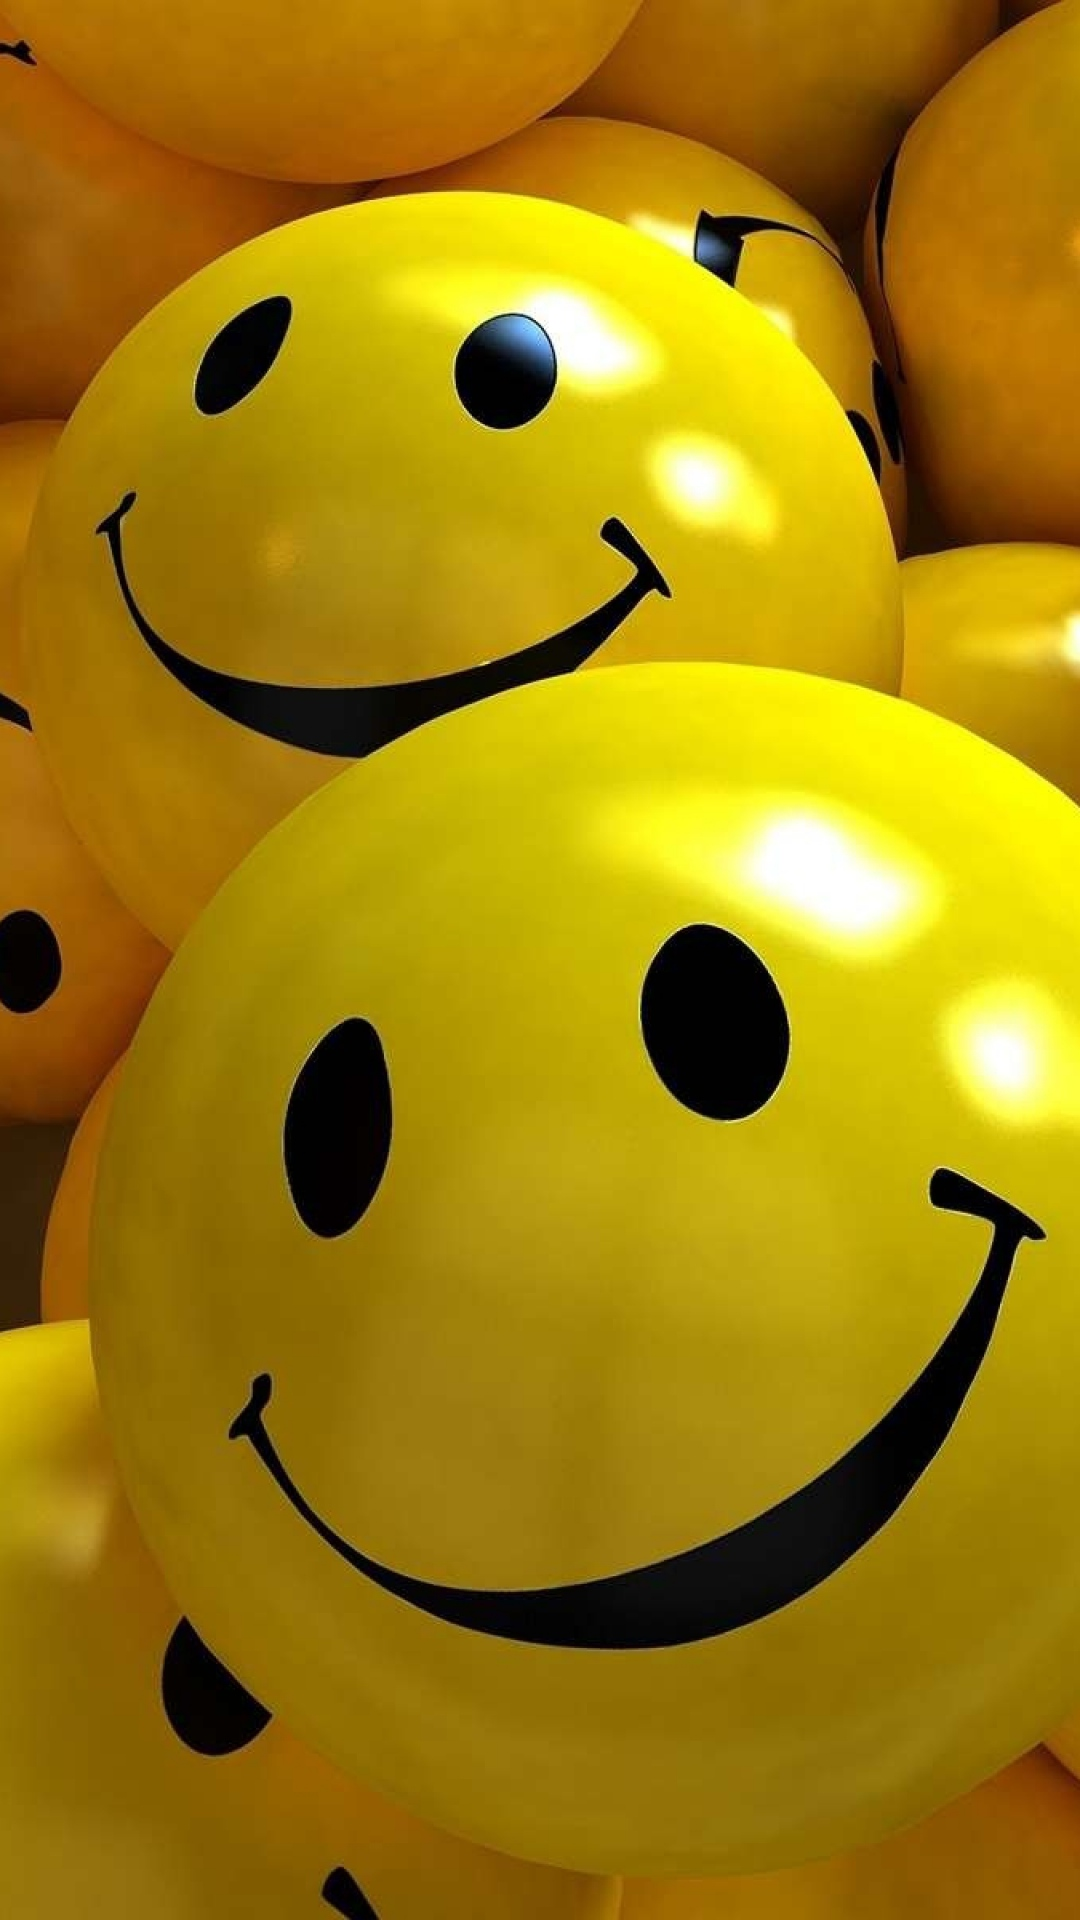 Free Download Download Hd 3d Yellow Smile Balls Wallpaper Wallpapersbyte 1080x1920 For Your Desktop Mobile Tablet Explore 26 Smileys Wallpapers For Mobile Smileys Wallpapers For Mobile Smileys Wallpaper Wallpapers For Mobile